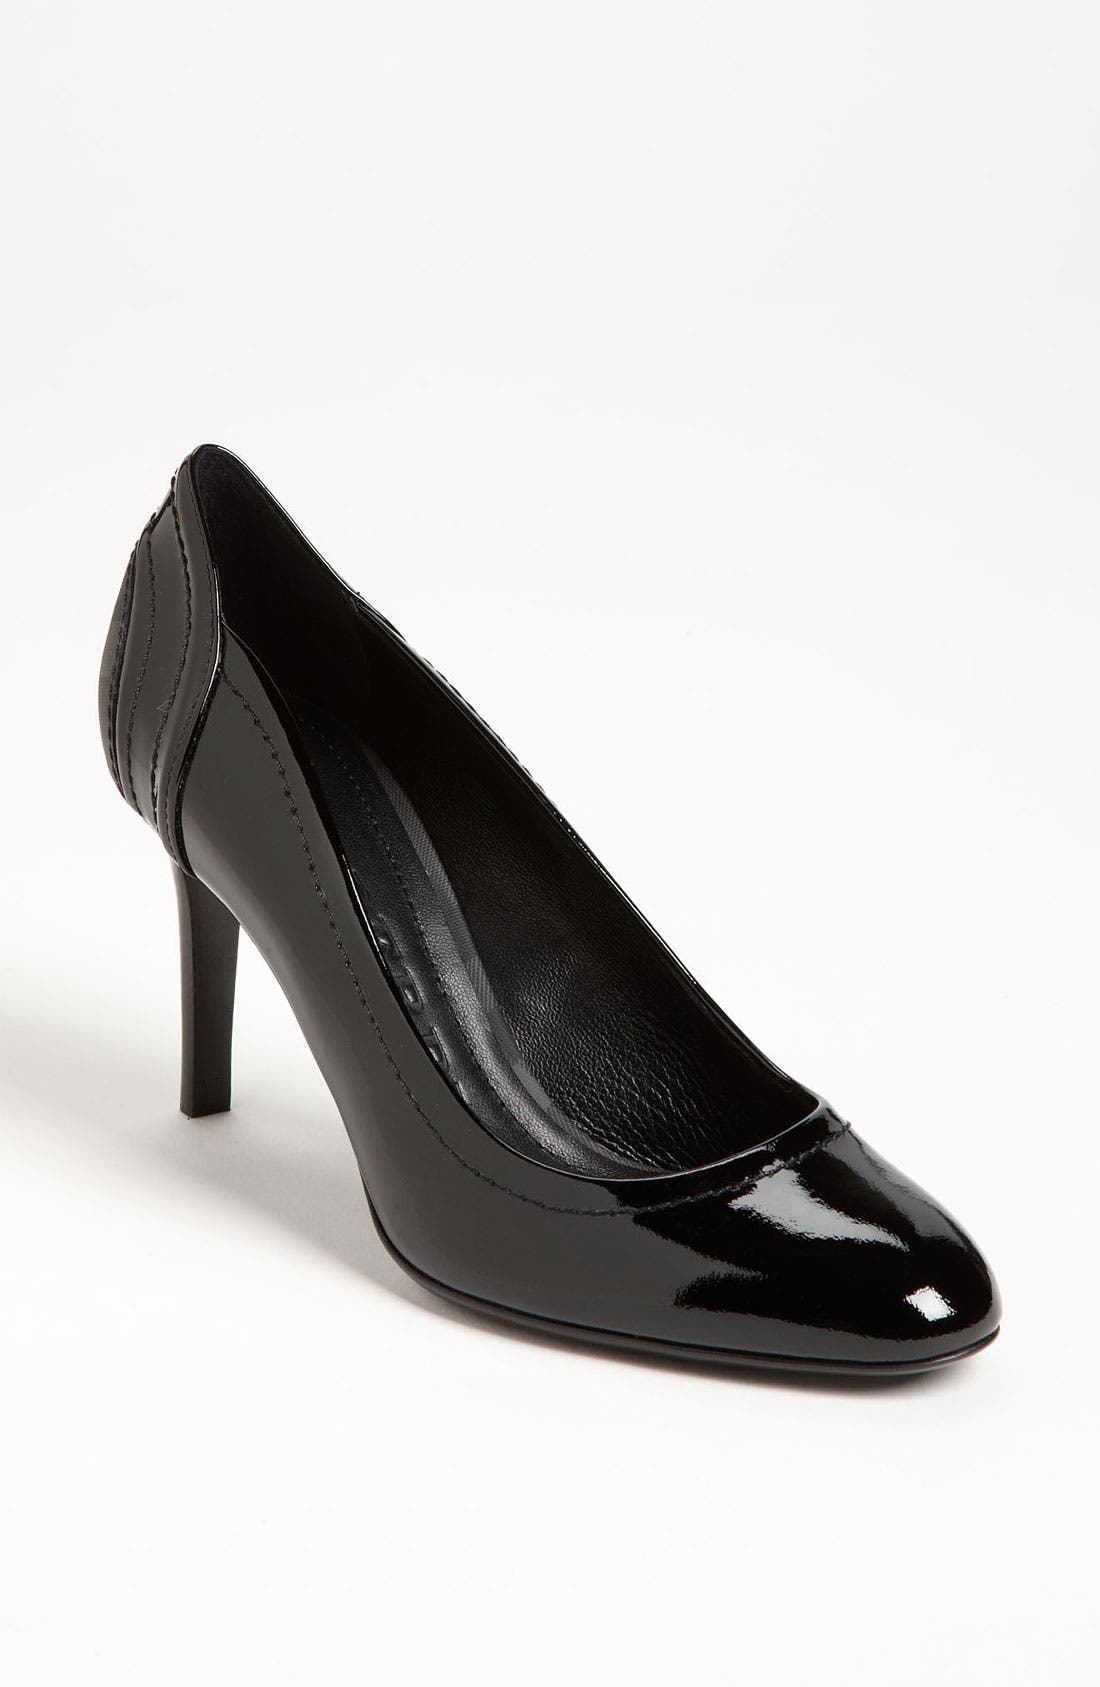 Alternate Image 1 Selected - Burberry Patent Leather Pump